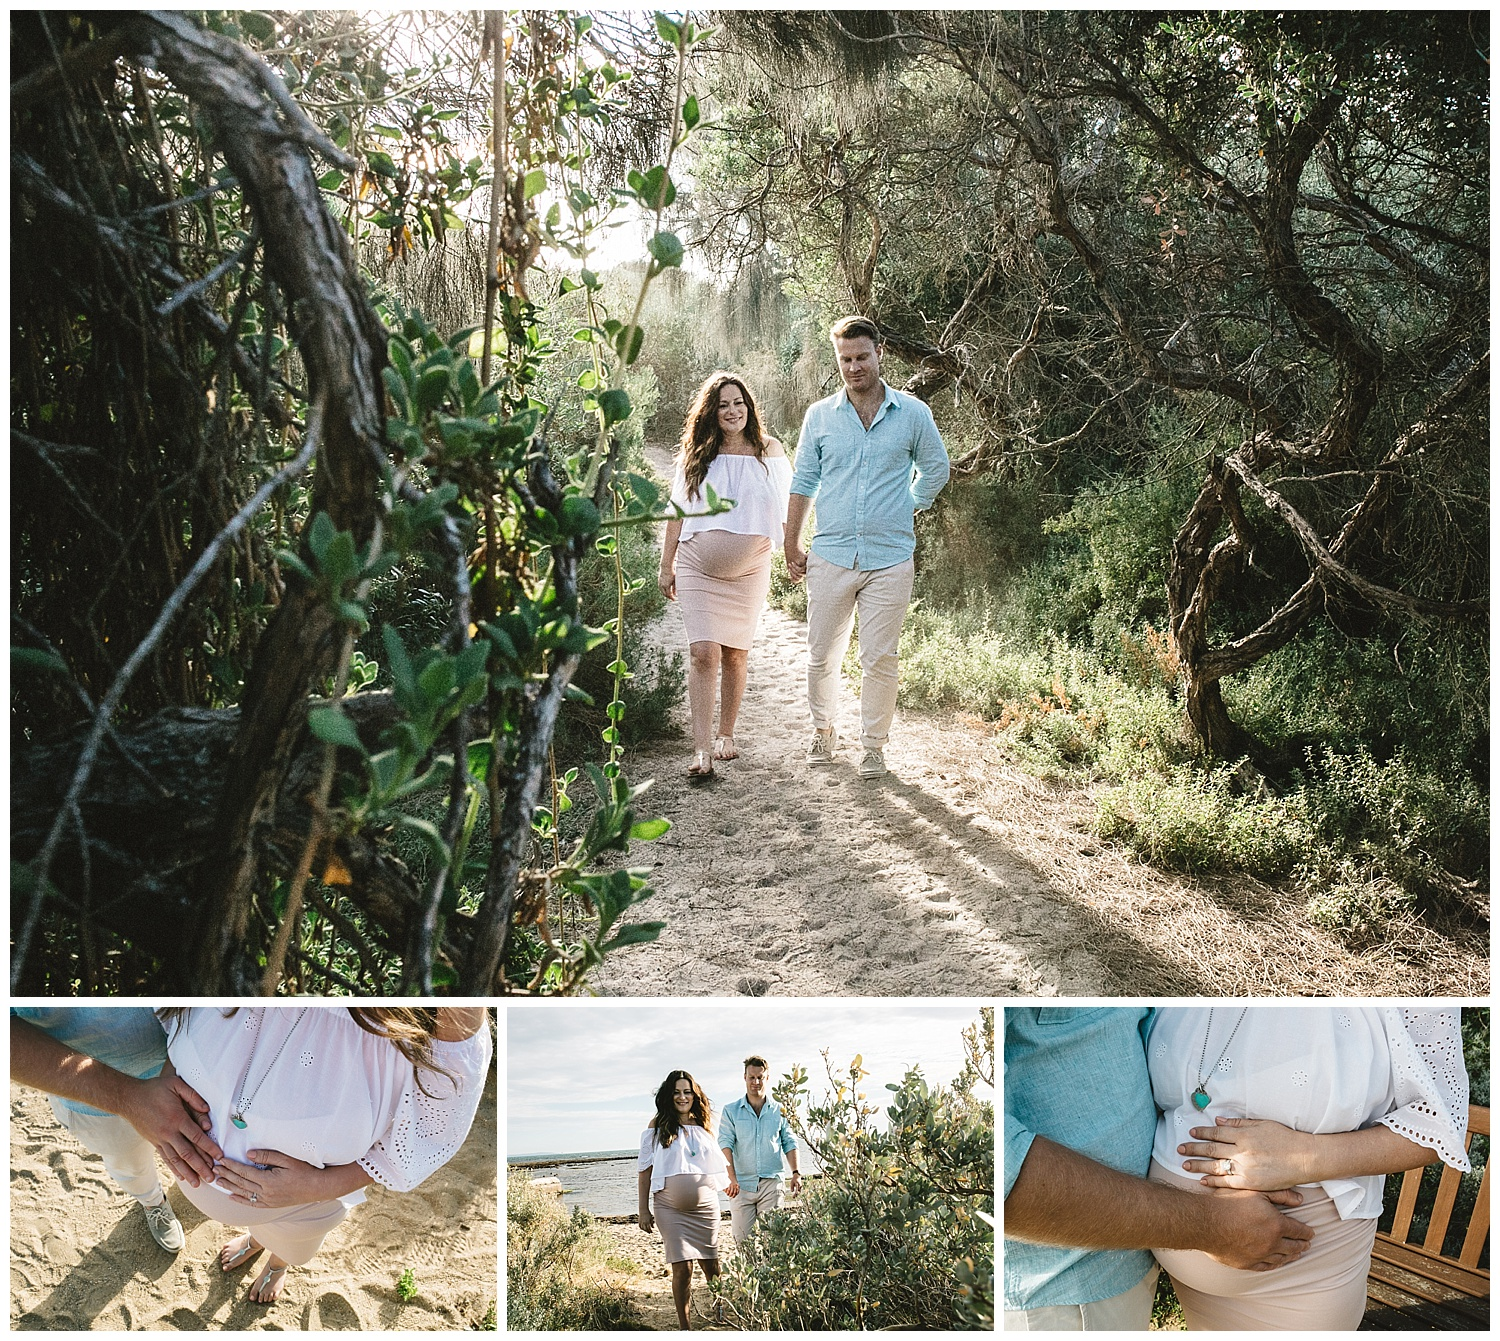 elwood is a great location for a maternity photogrpahy session and newborn